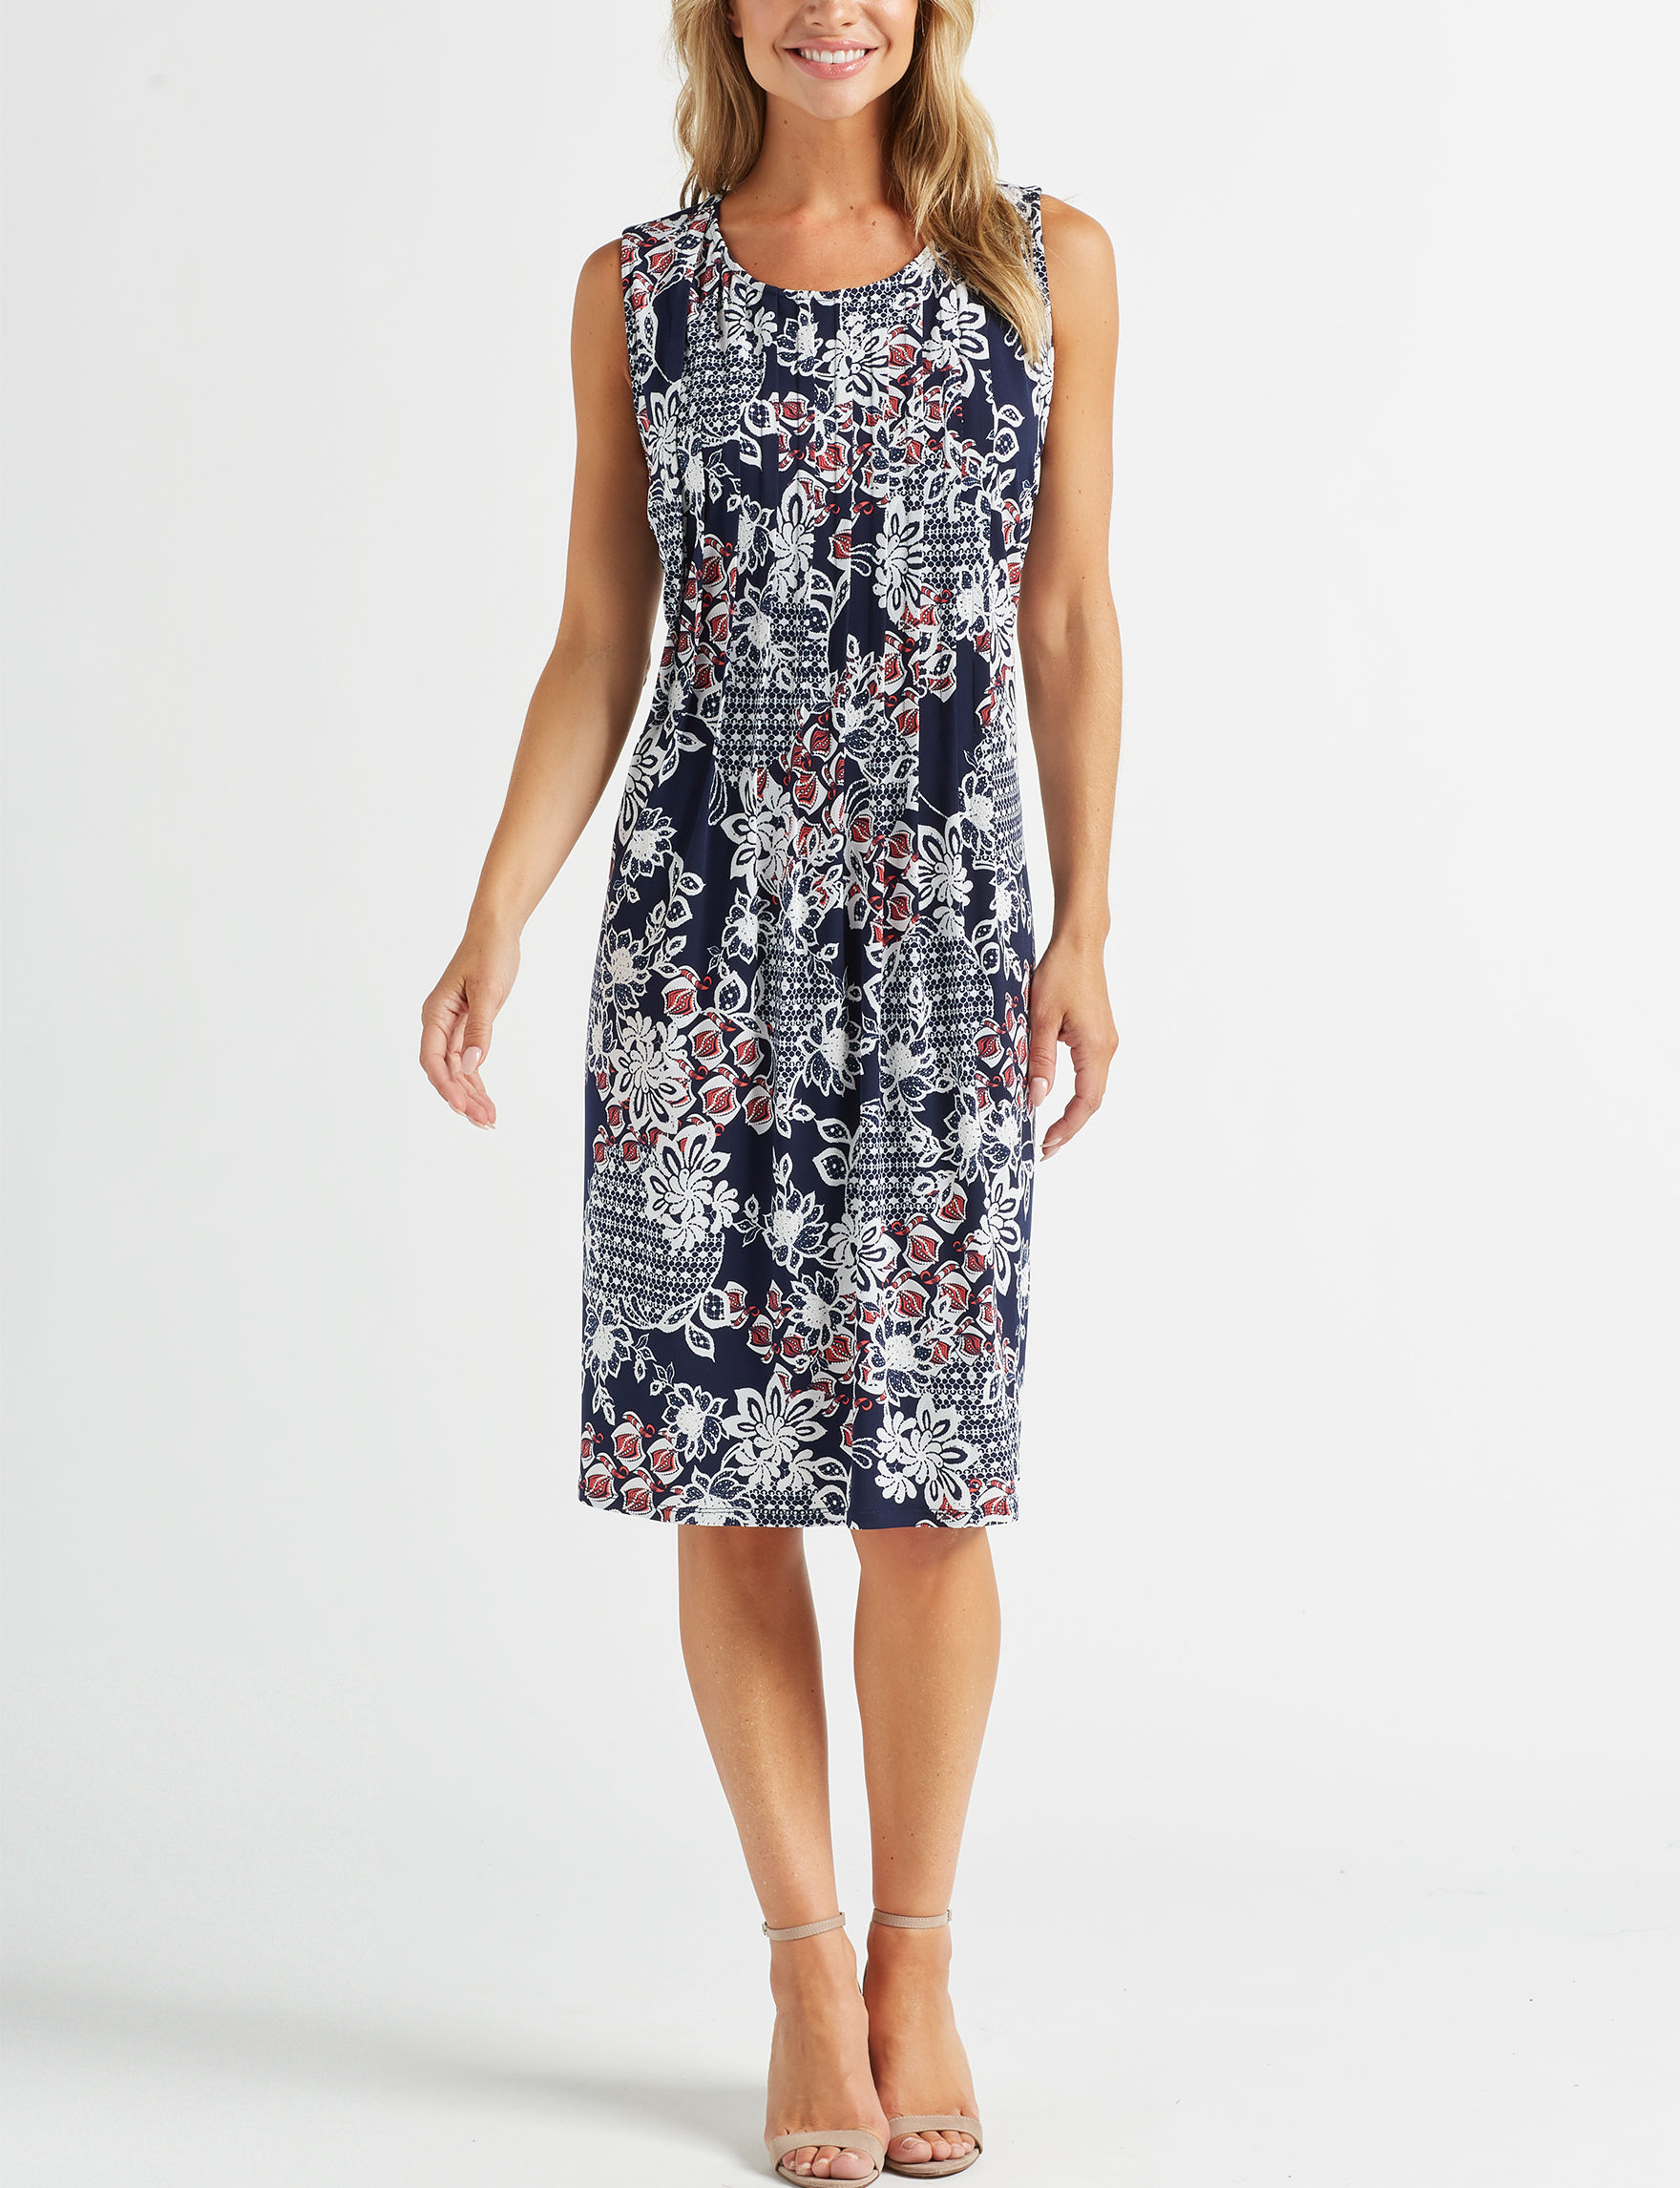 Glamour Navy / Multi Everyday & Casual Shift Dresses